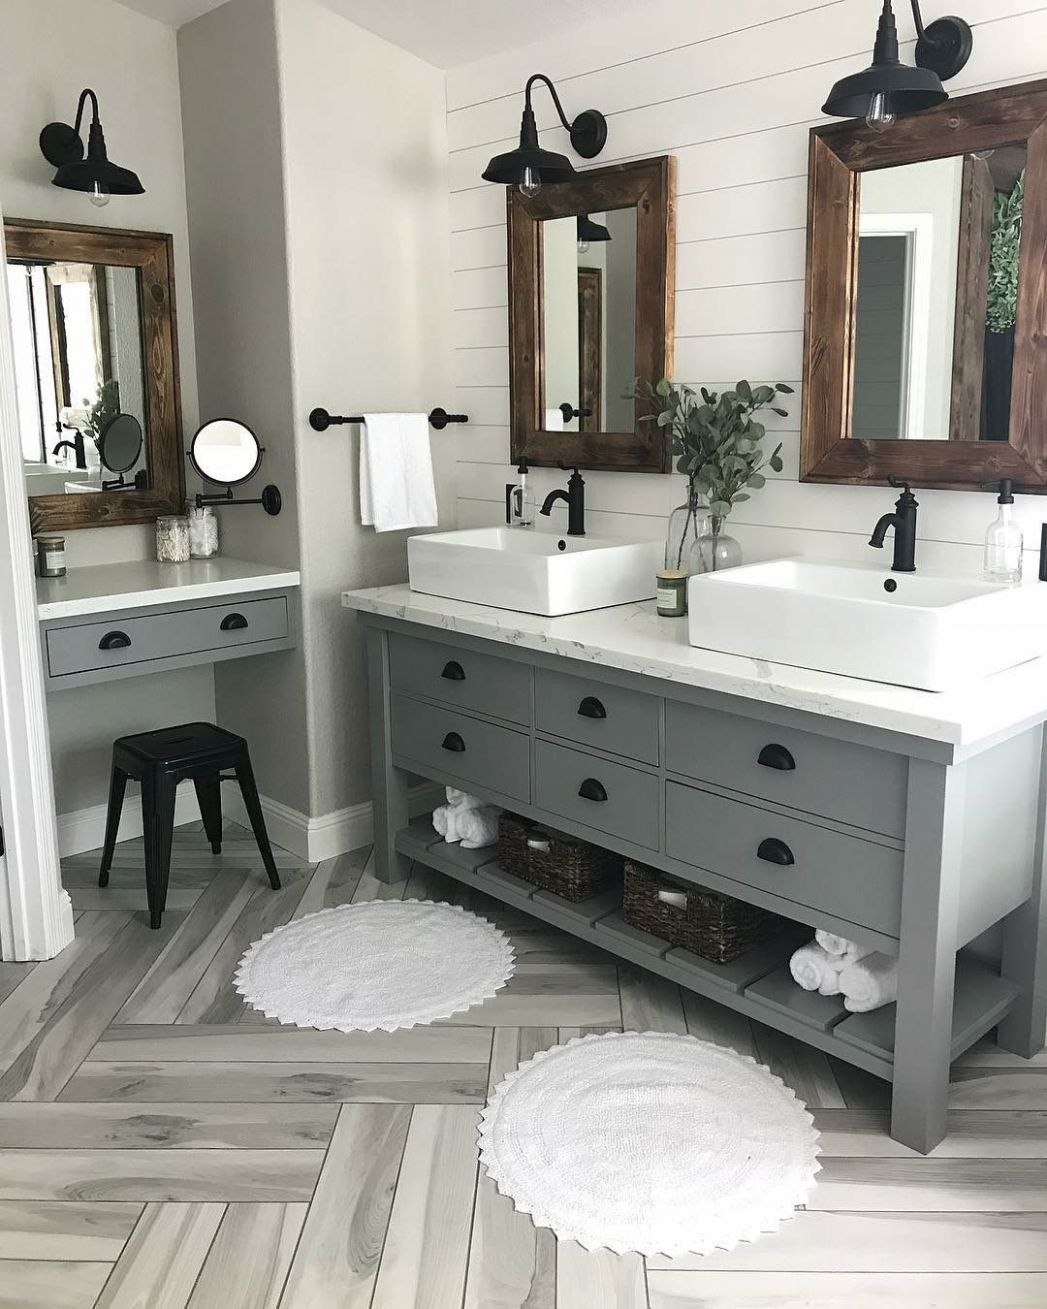 Modern Farmhouse Master Bath Renovation - Obsessed with our vanity ..